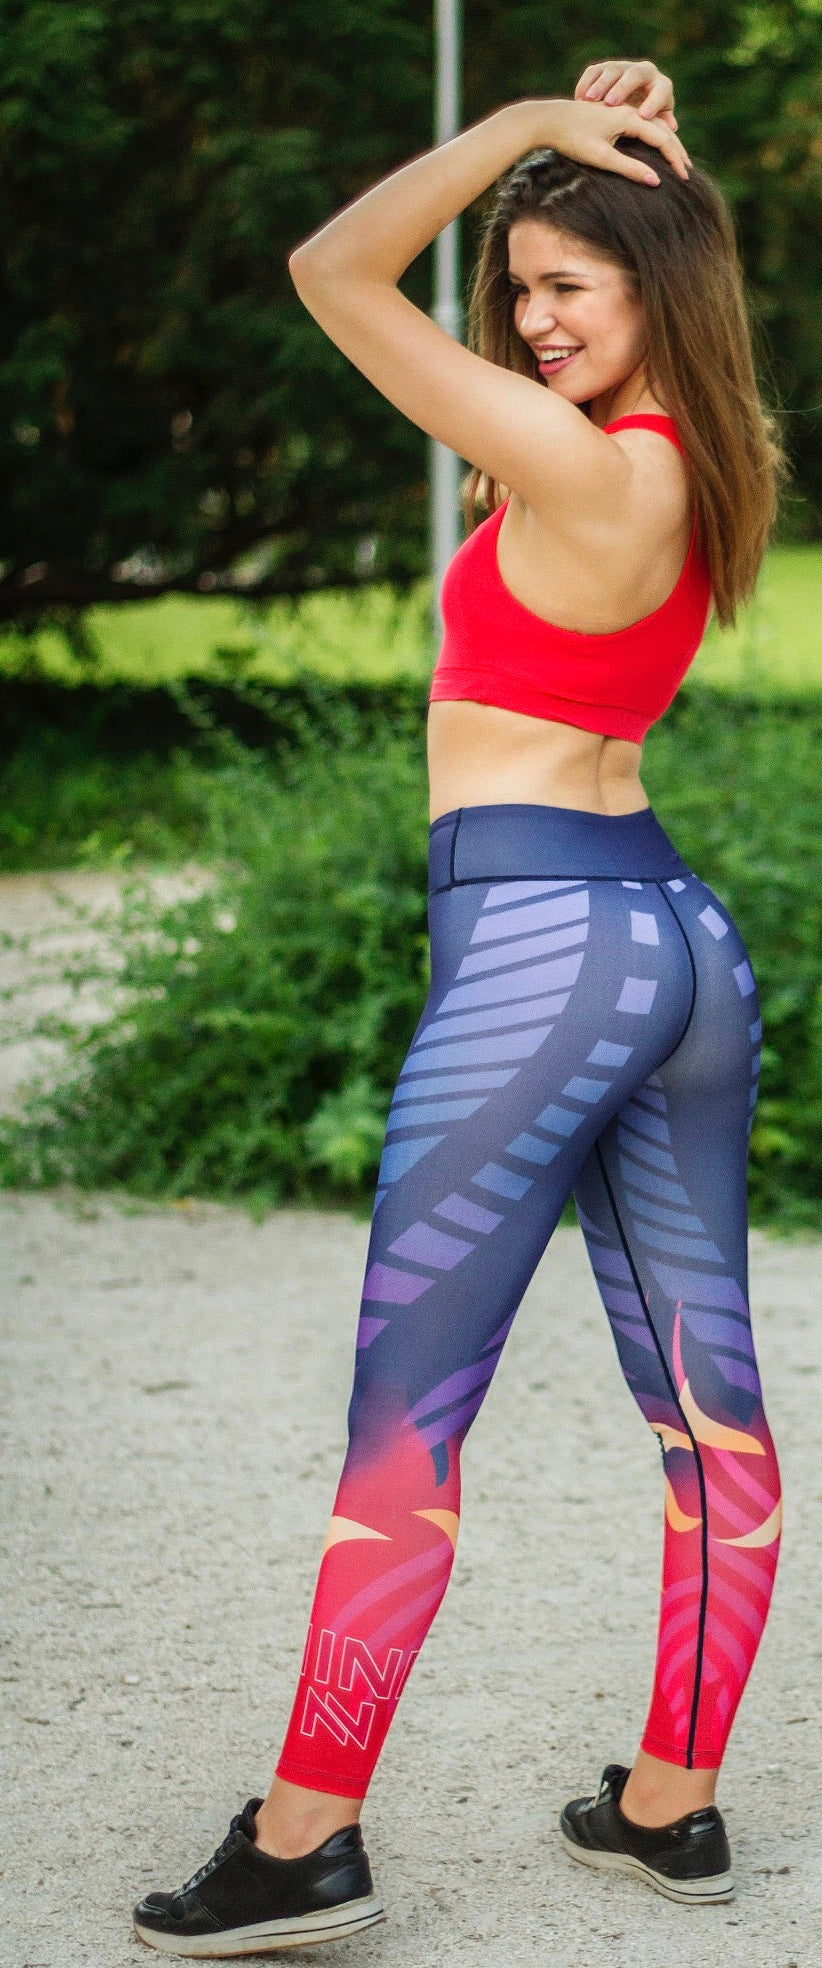 LINA Leggings Női